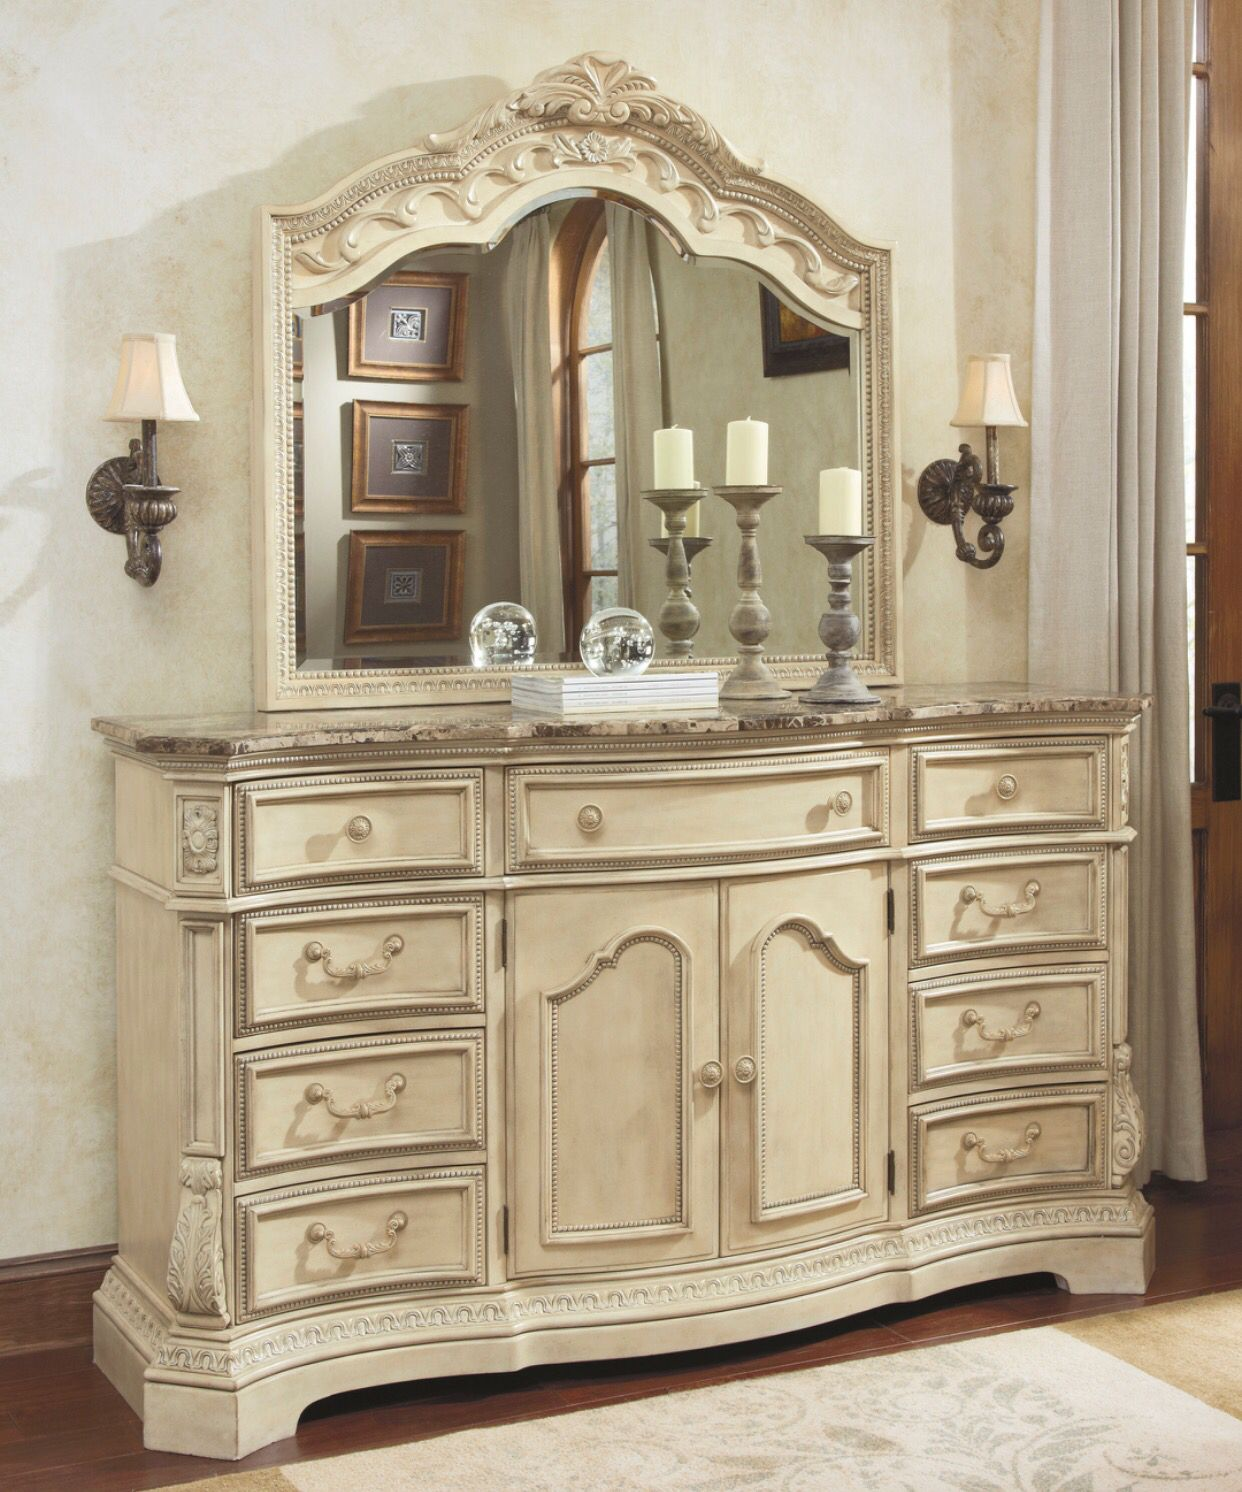 Best Ashley Furniture Ortanique Dresser B707 31 Dresser With 400 x 300